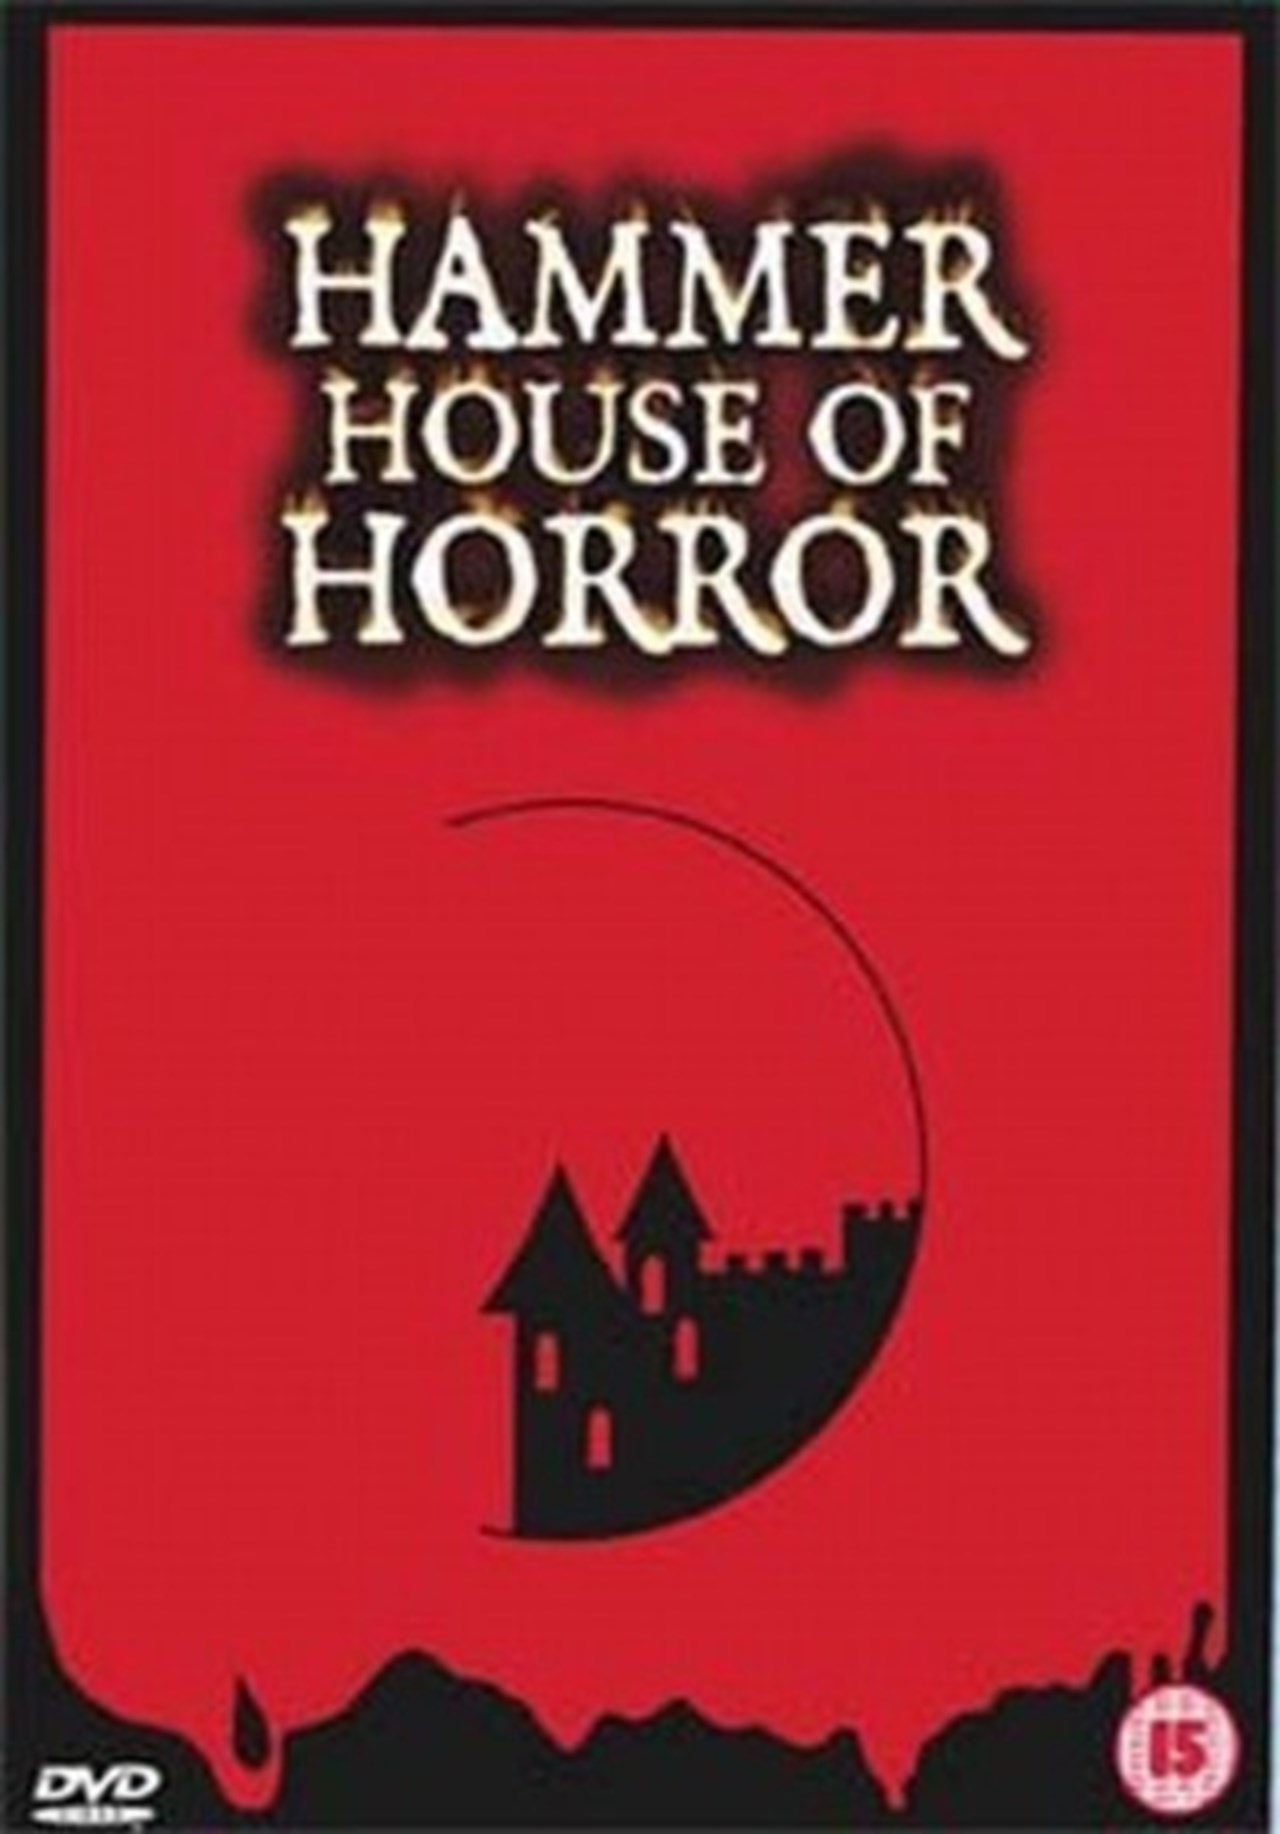 Hammer House Of Horror The Complete Series Dvd Box Set Free Shipping Over 20 Hmv Store